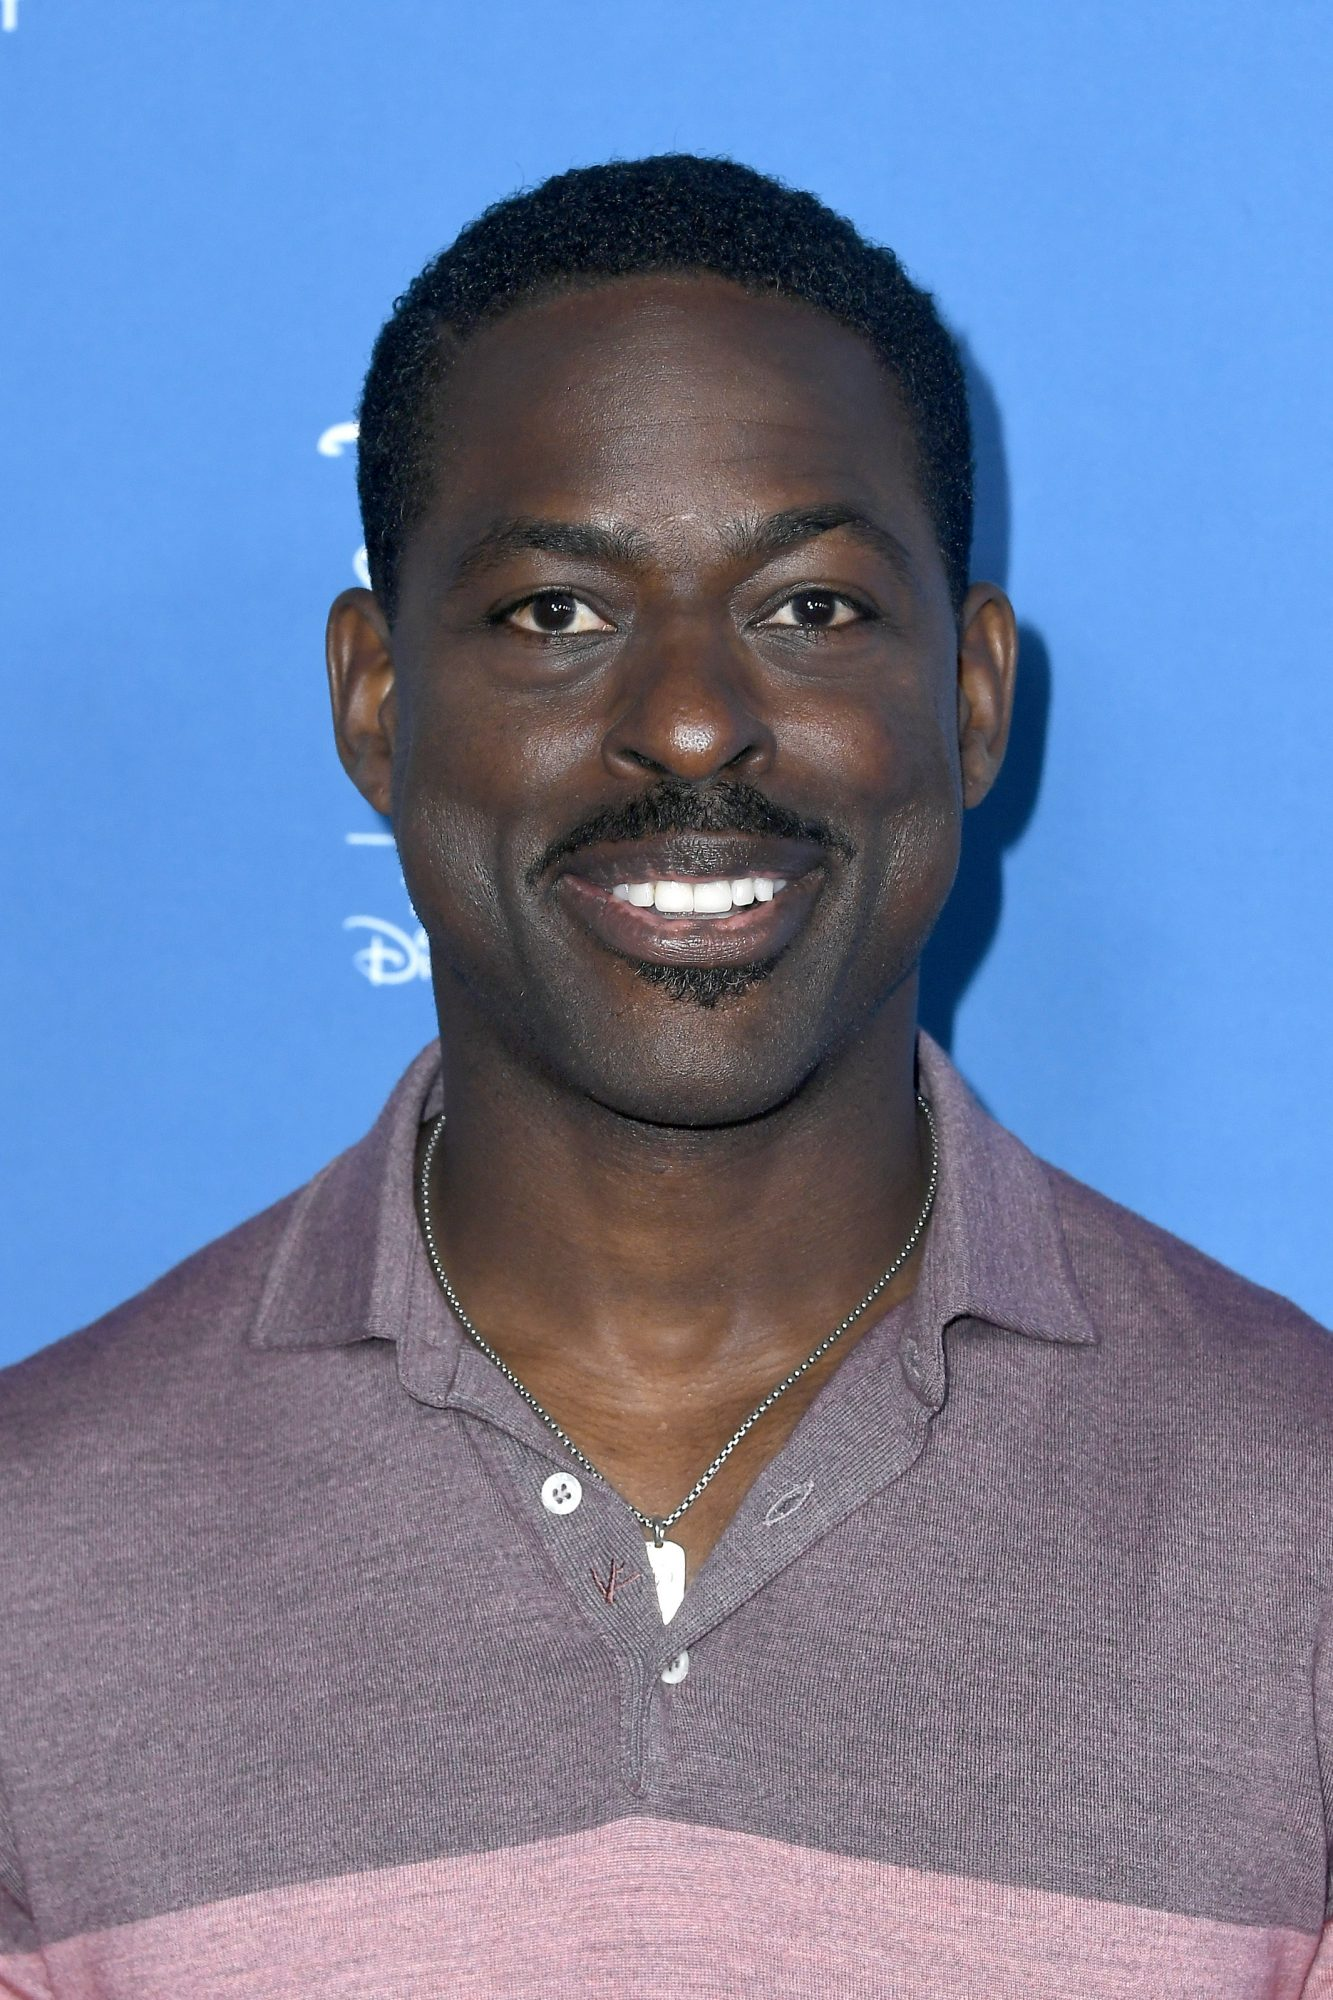 ANAHEIM, CALIFORNIA - AUGUST 24: Sterling K. Brown attends Go Behind The Scenes with Walt Disney Studios during D23 Expo 2019 at Anaheim Convention Center on August 24, 2019 in Anaheim, California. (Photo by Frazer Harrison/Getty Images)